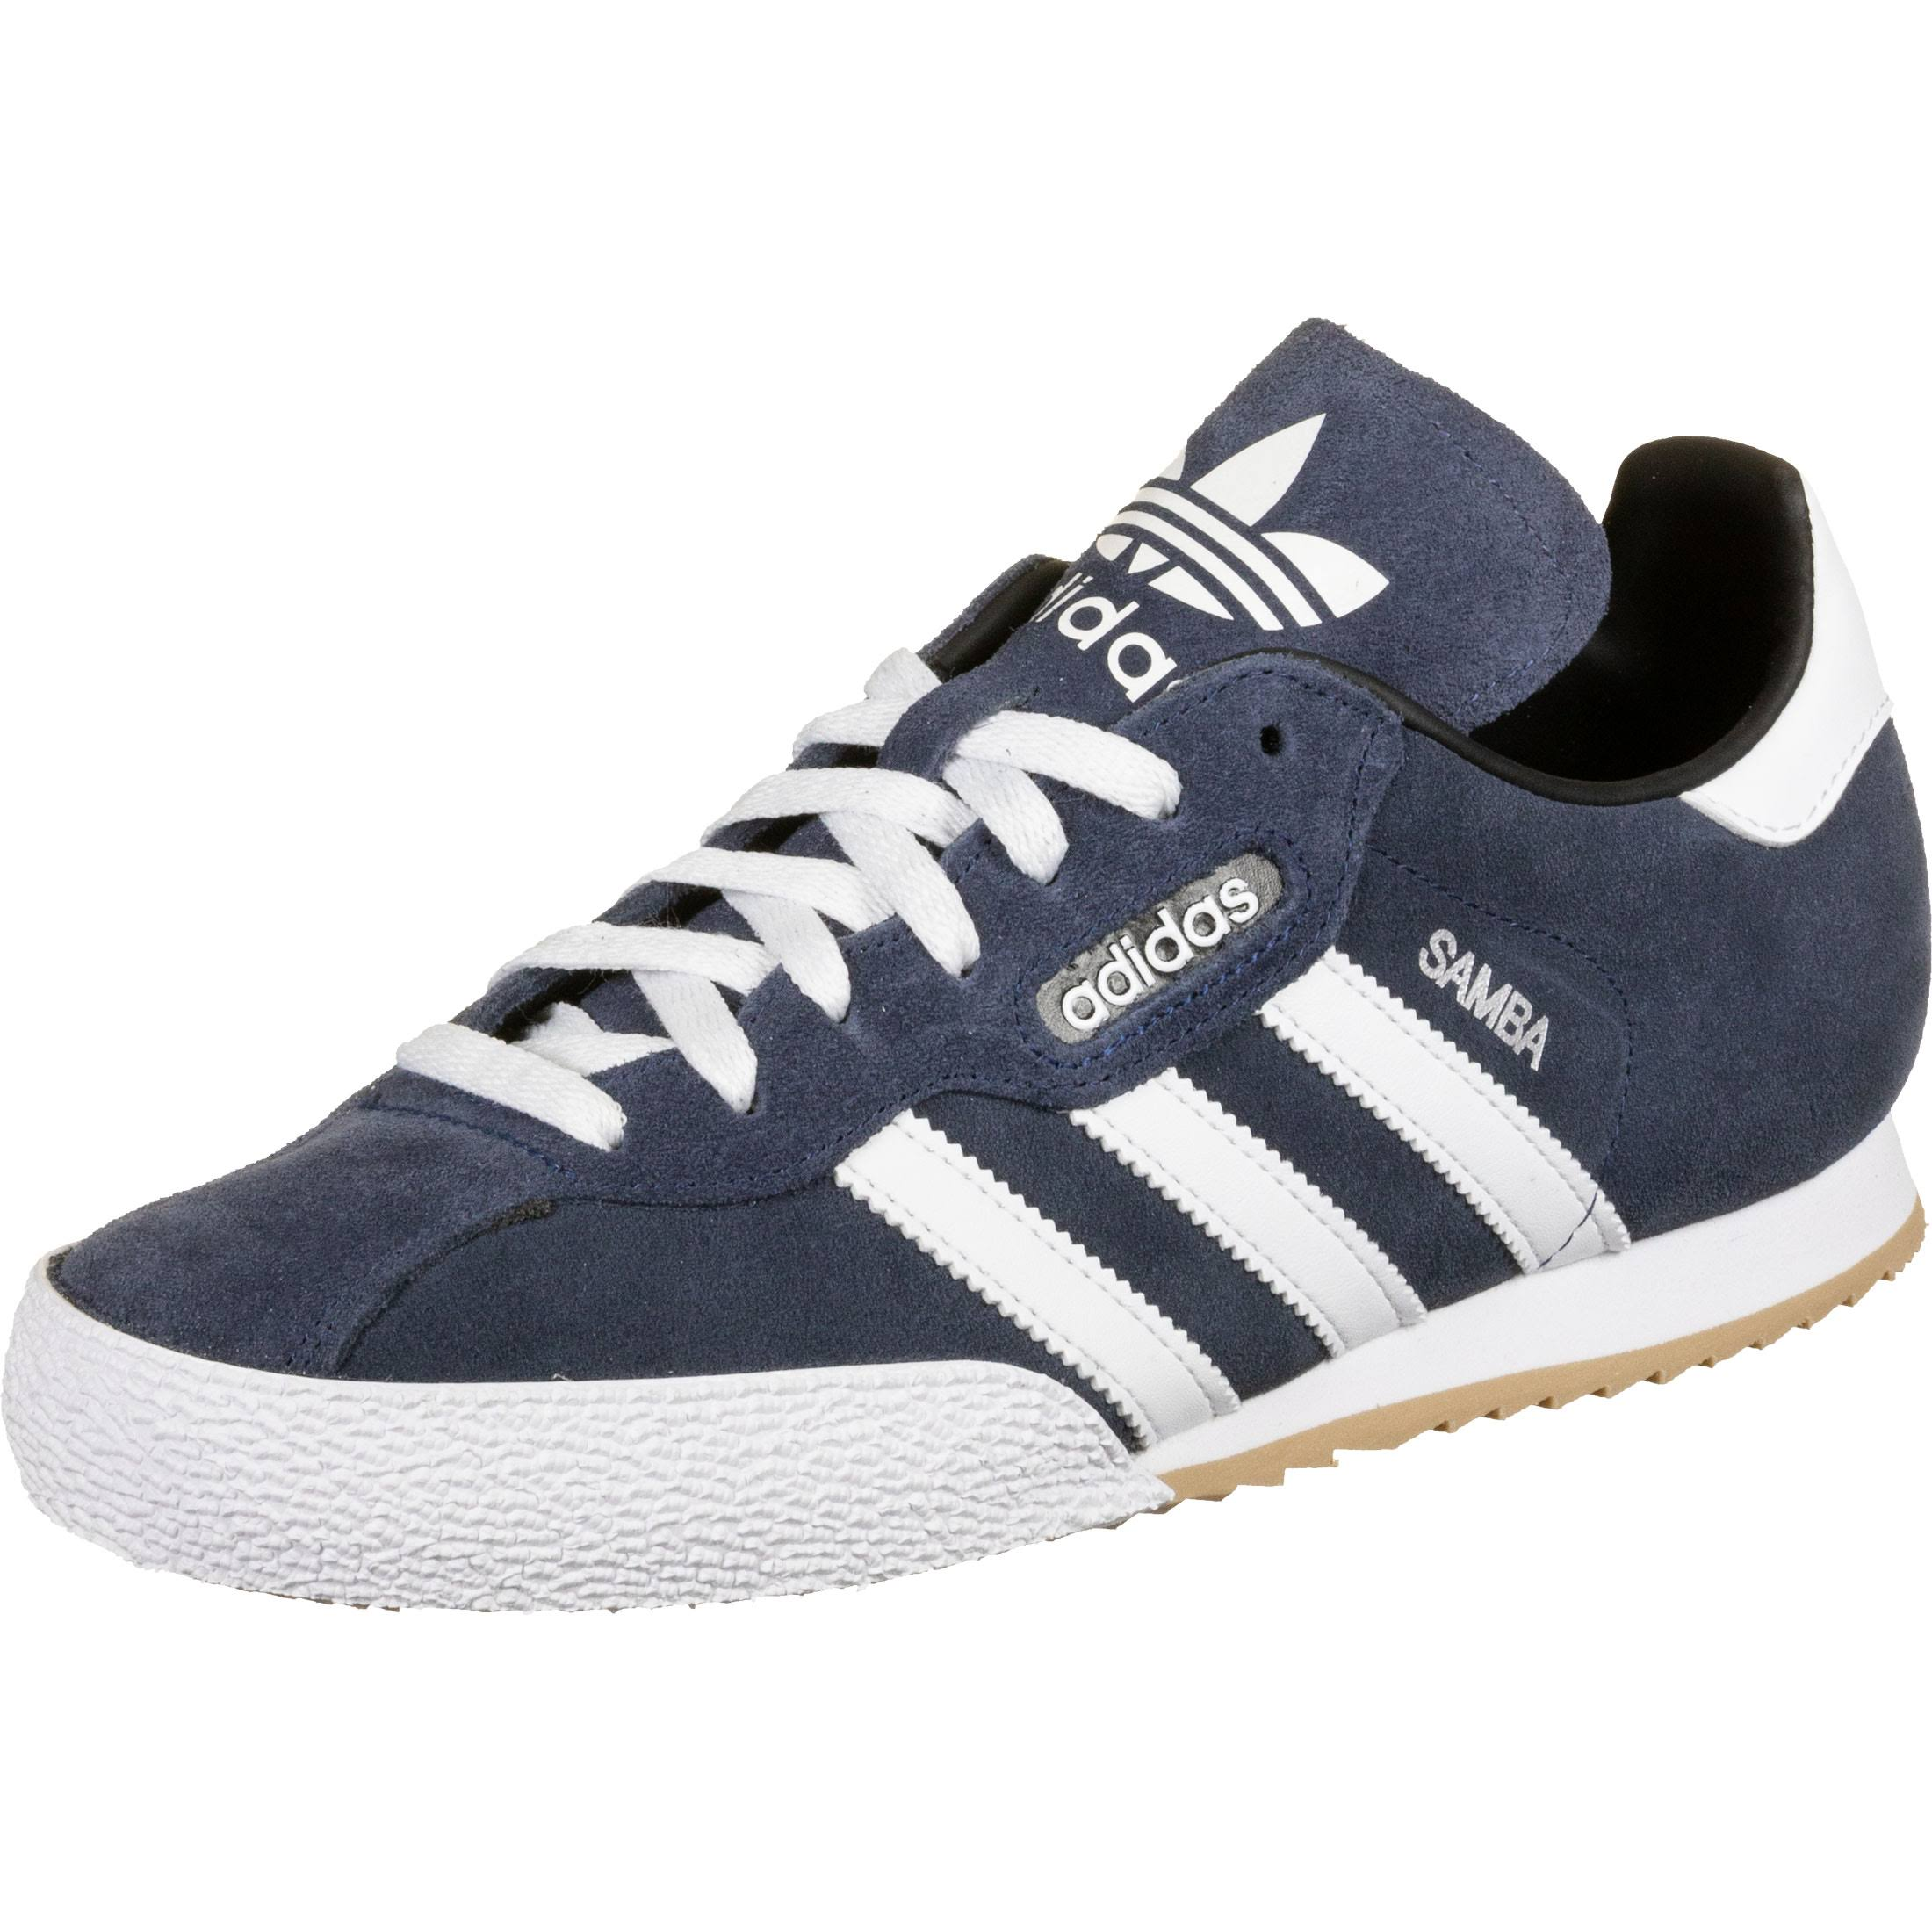 (11) Adidas Originals Samba Super Suede Trainers - Navy